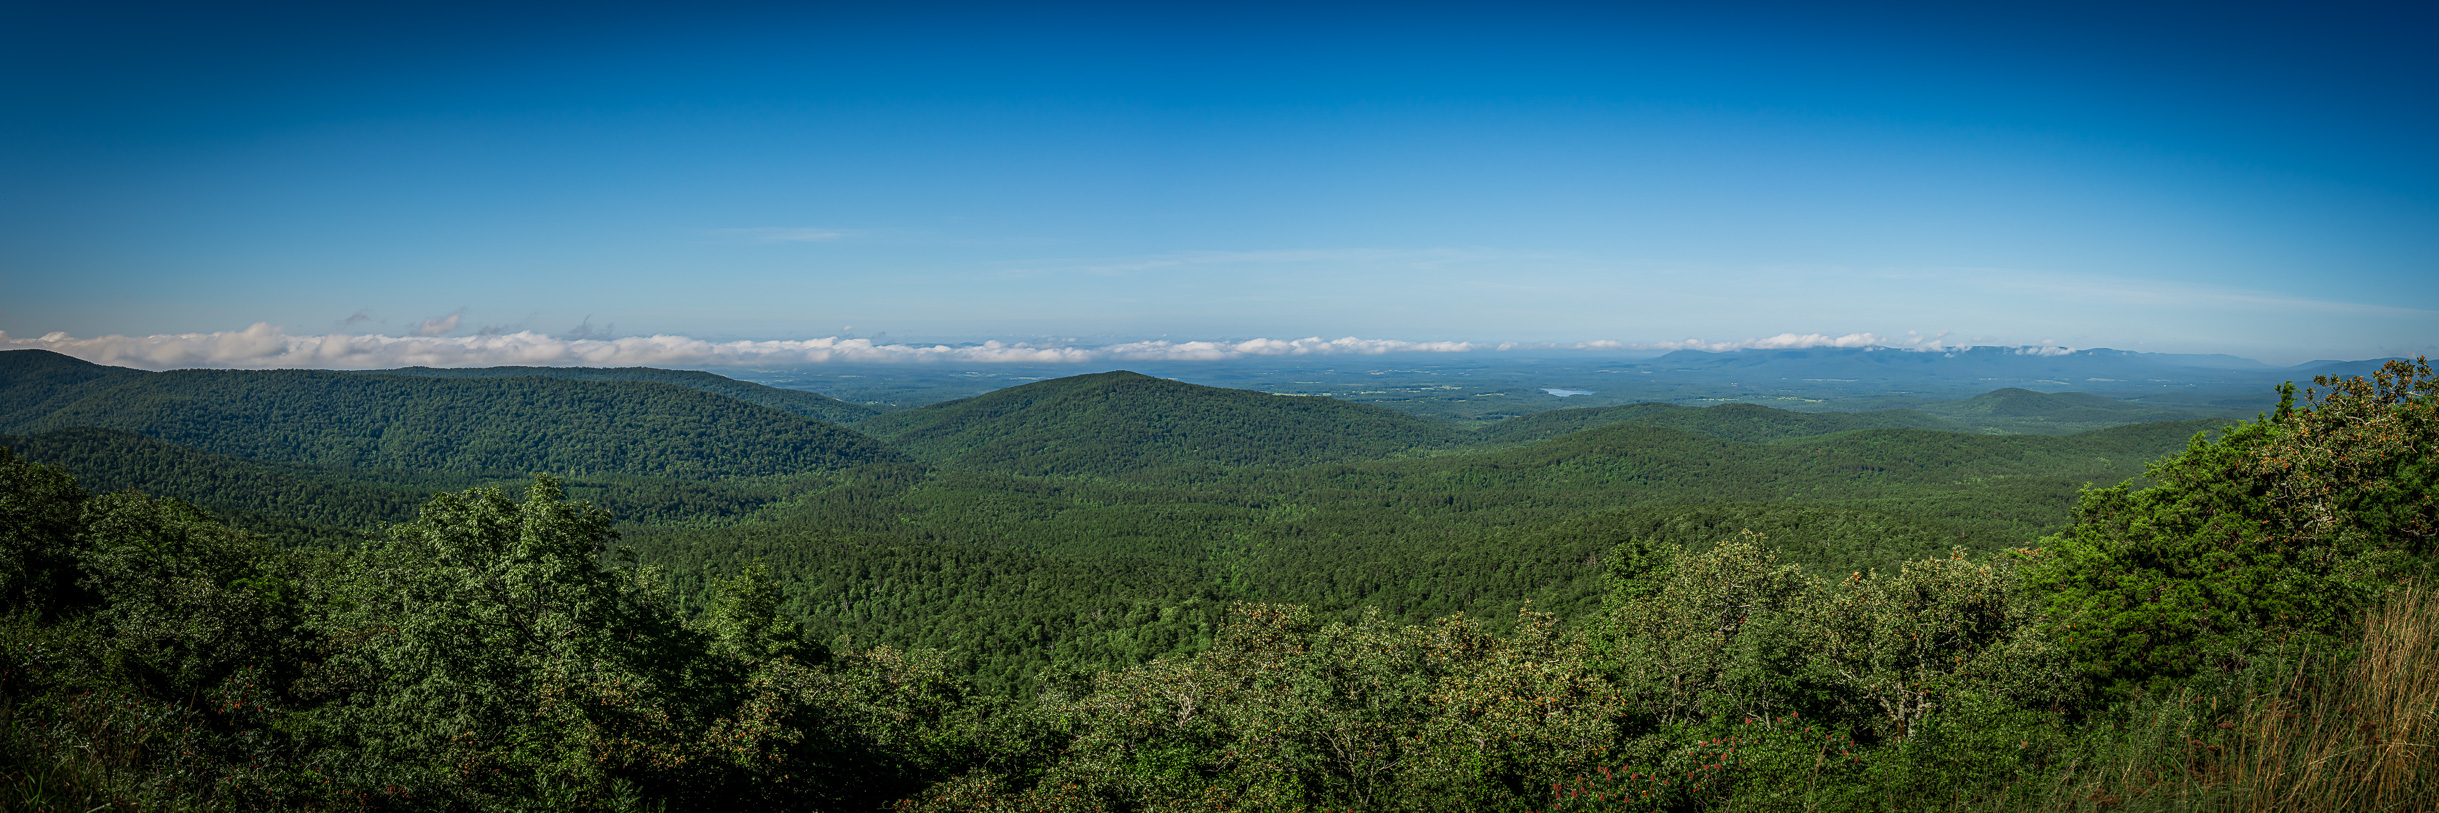 The Ouachita National Forest stretches over the mountains near Mena, Arkansas.